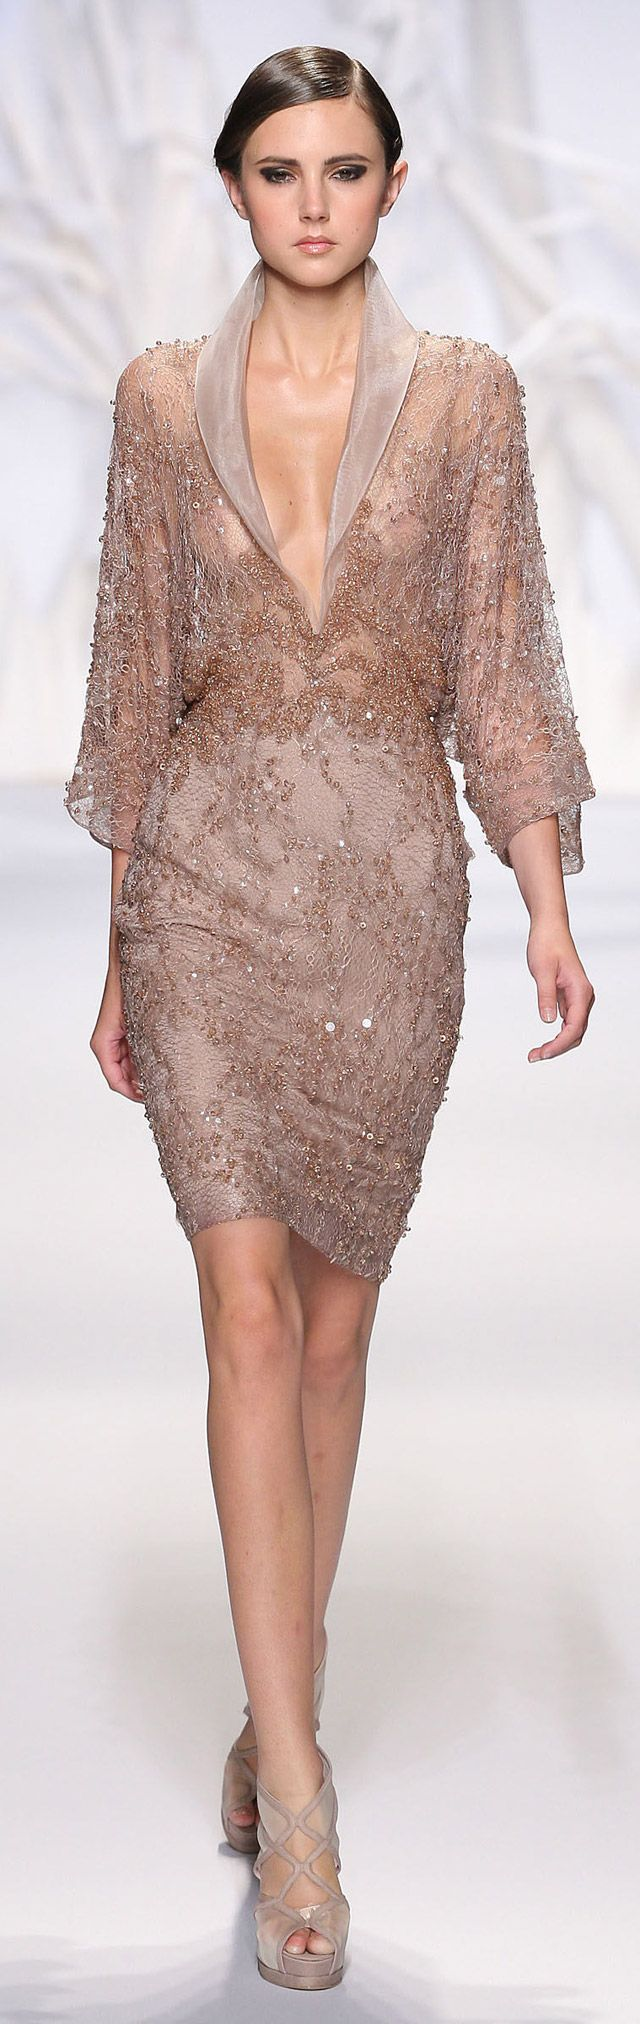 Abed Mahfouz - Fall/Winter 2013-2014